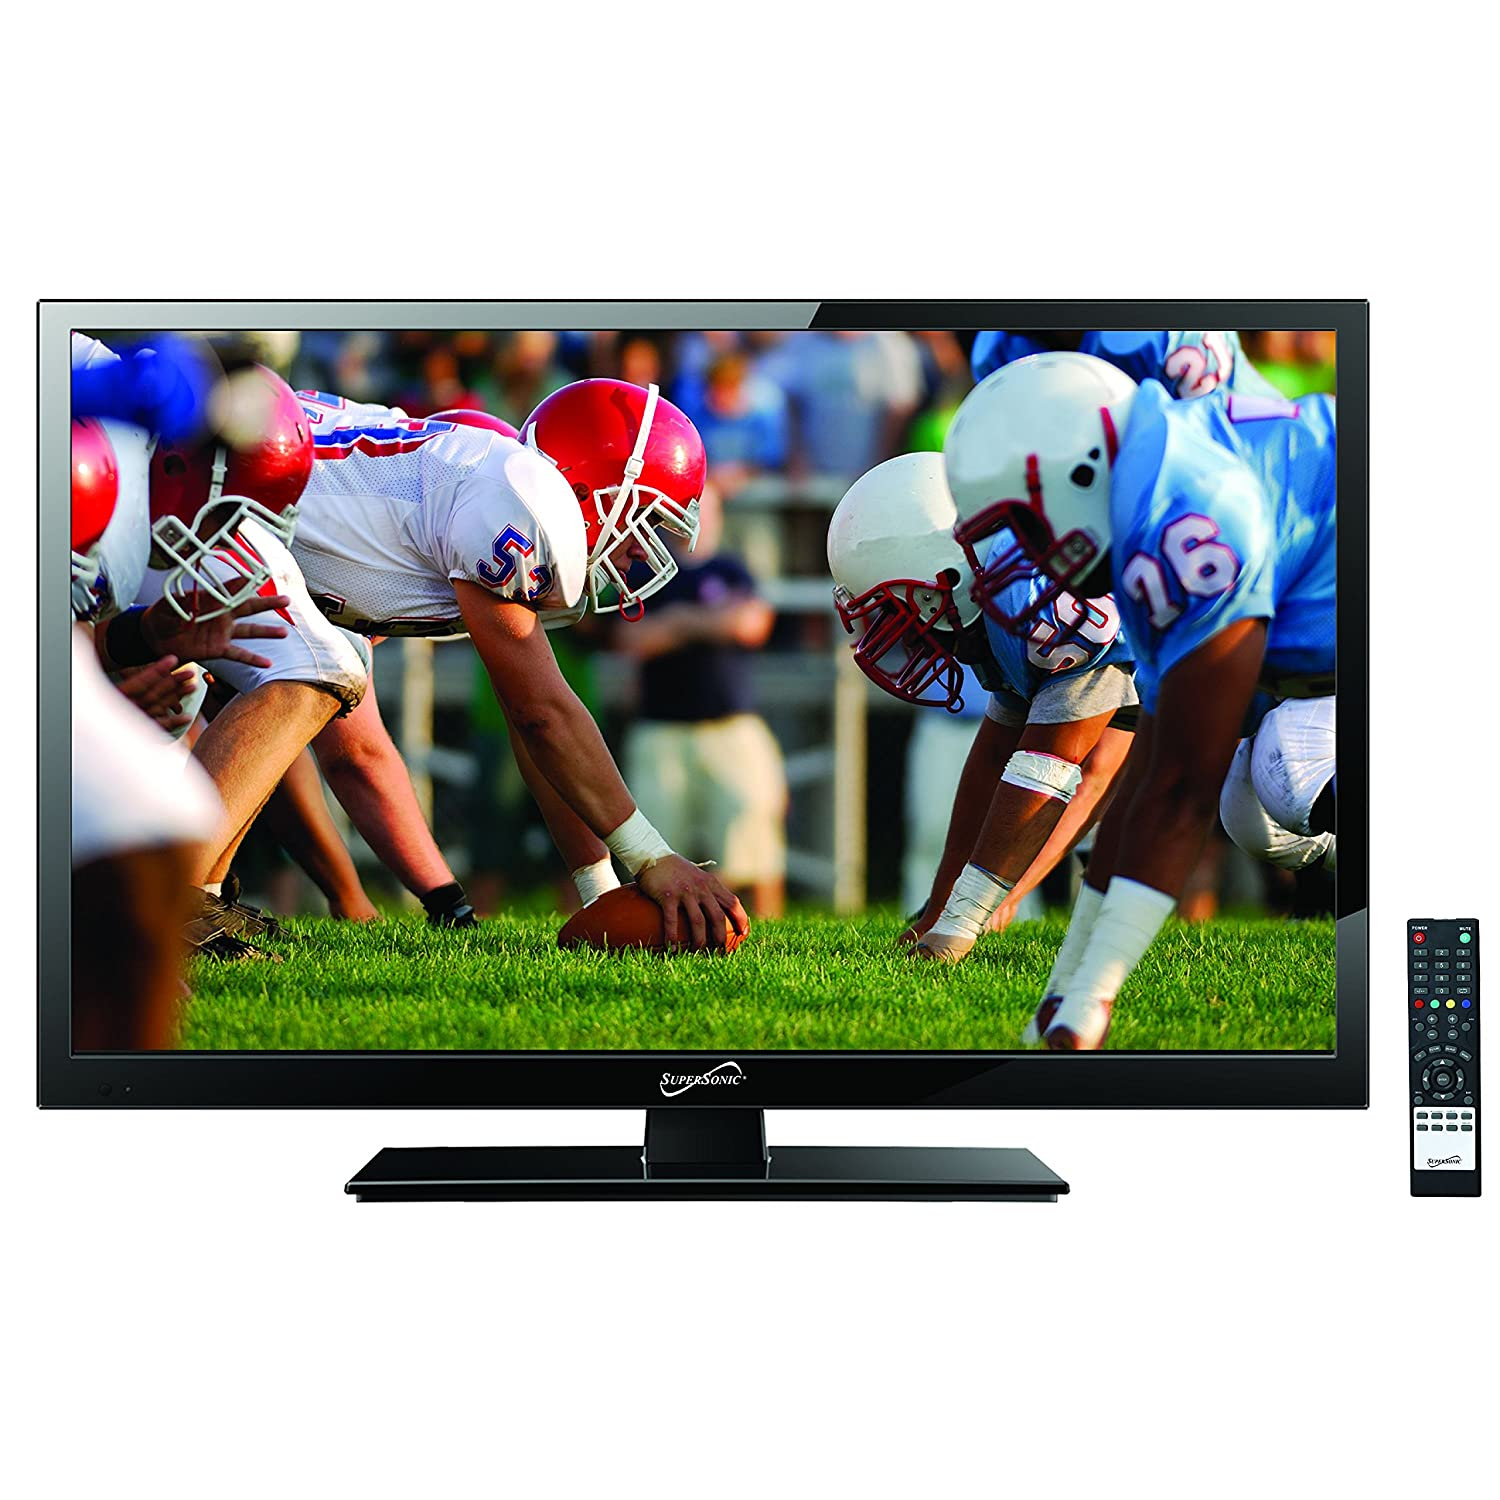 SuperSonic 24-Inch 1080p LED Widescreen HDTV with HDMI AC/DC Compatible SC-2411